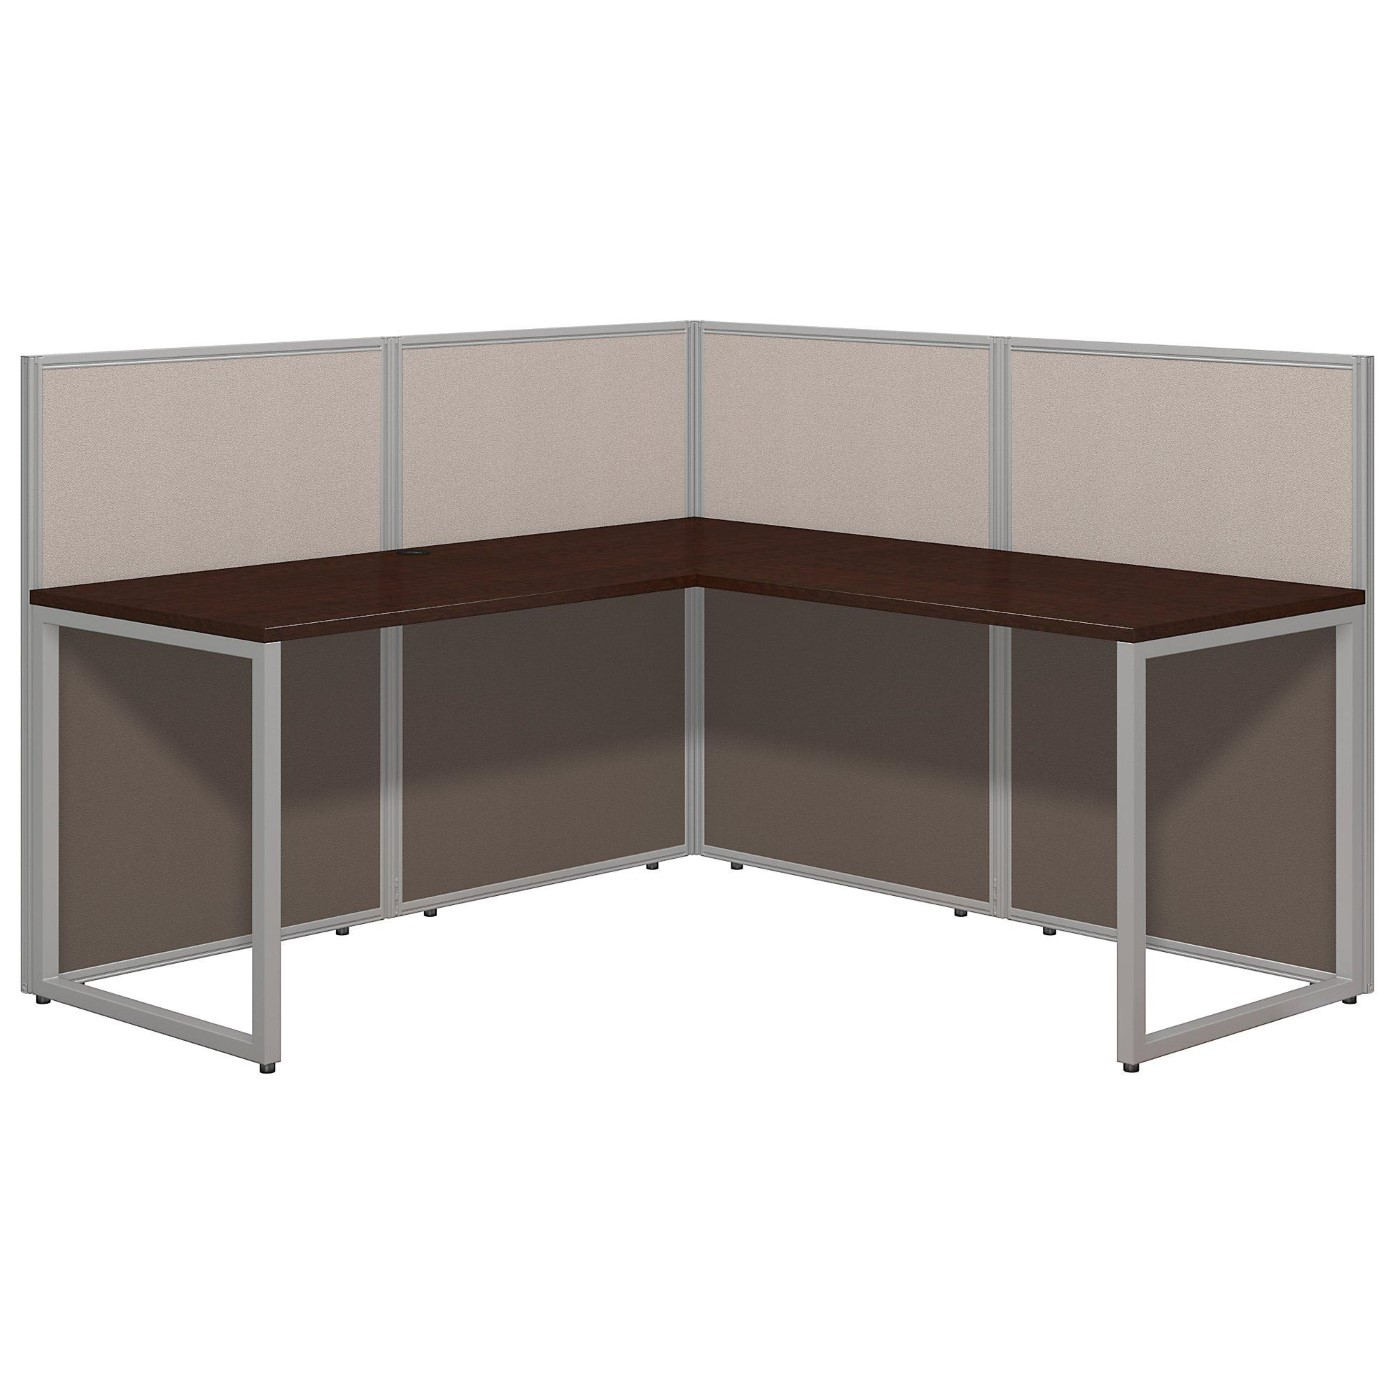 <font color=#c60><b>BUSH BUSINESS FURNITURE EASY OFFICE 60W L SHAPED DESK OPEN OFFICE. FREE SHIPPING</font></b></font></b>